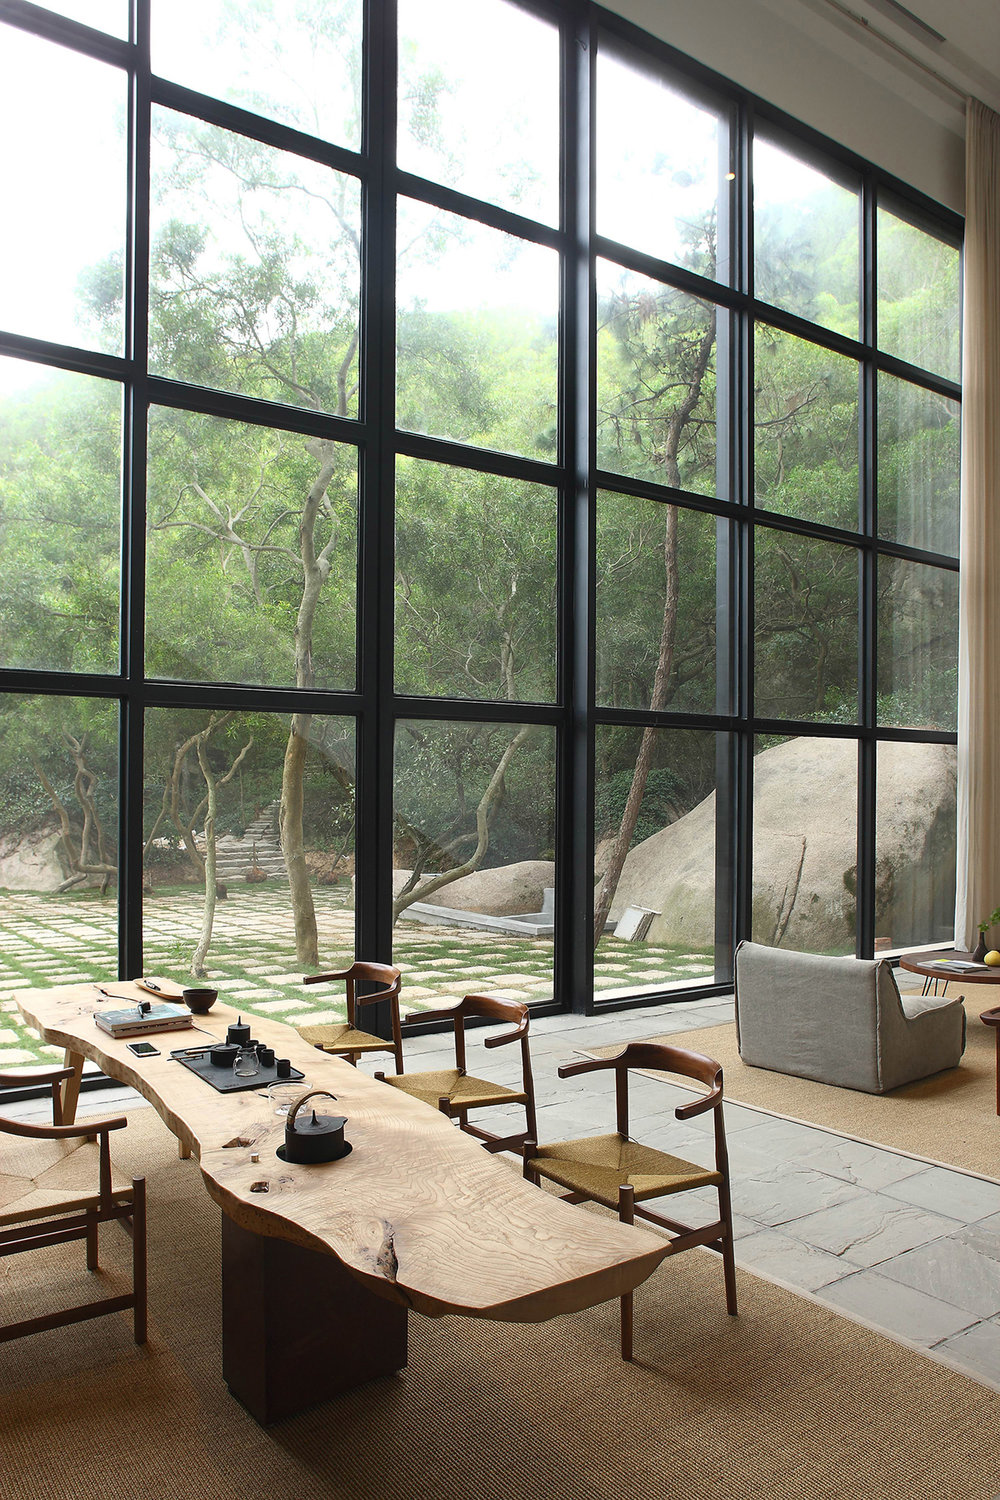 Natural Wabi Sabi elements in a modern home.